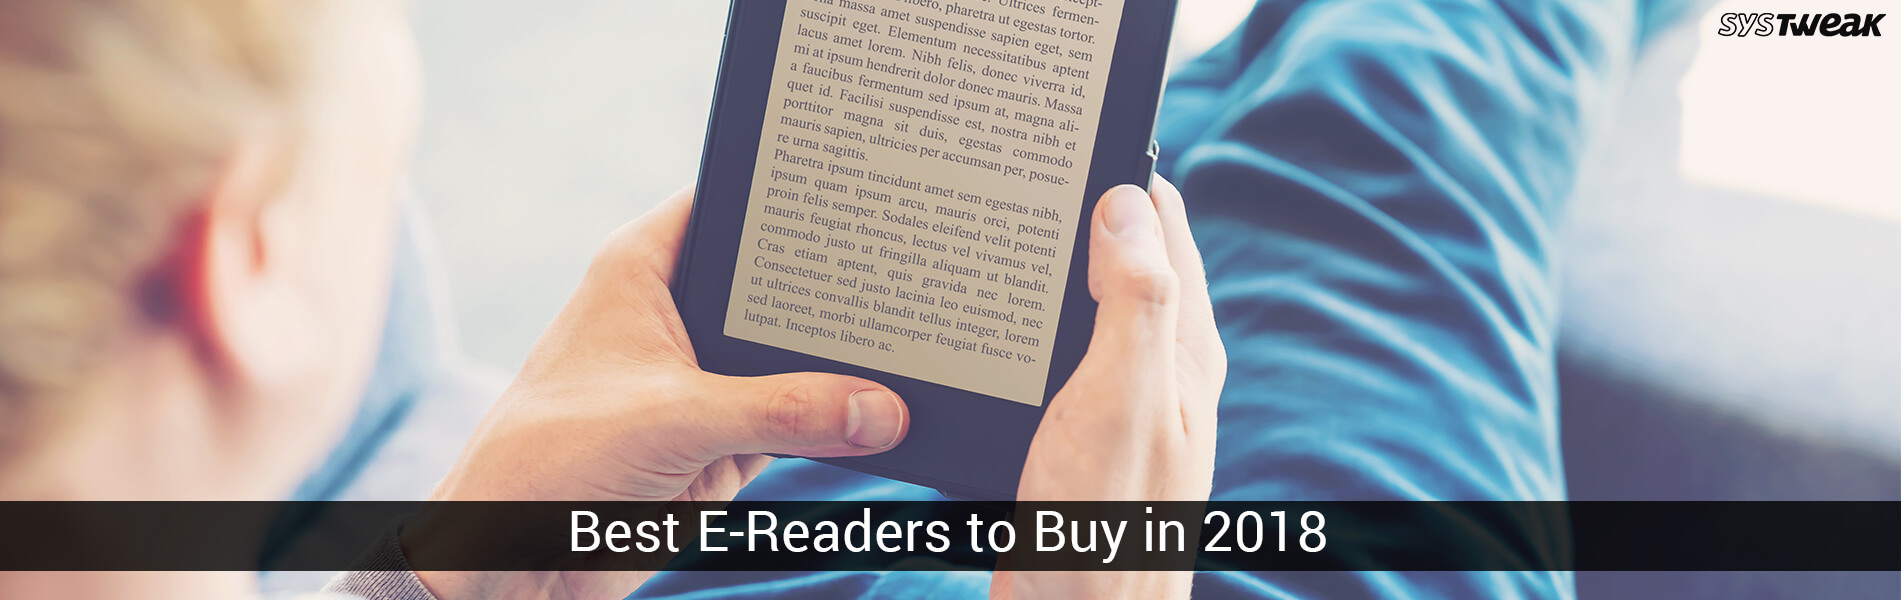 Best E-Readers To Buy In 2018